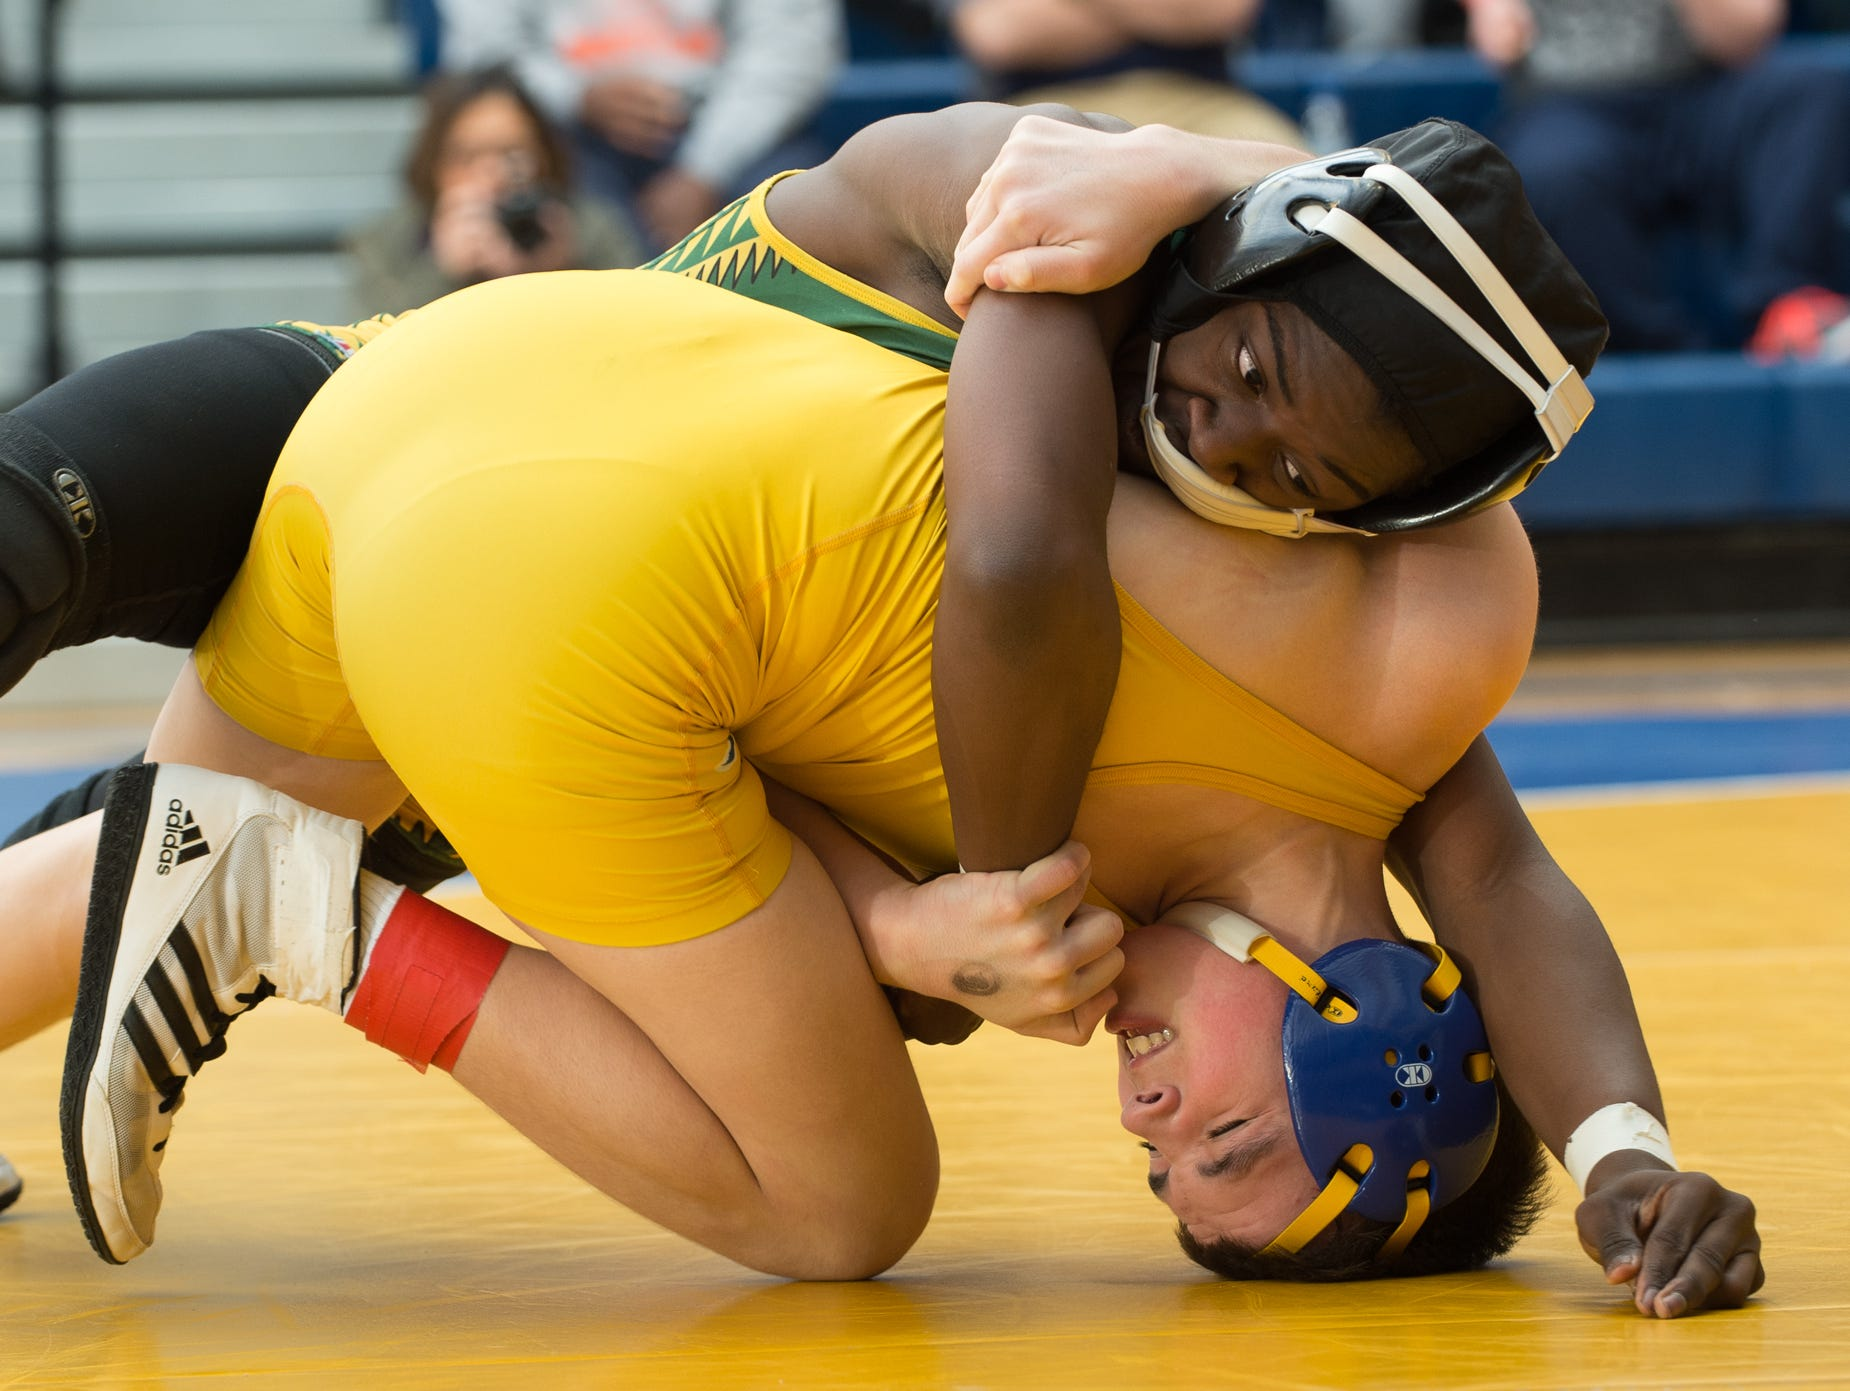 Indian River's Will Rayne (top) holds Caesar Rodney's Michael Primo down on the mat in the 106 pound championship match at the Henlopen Conference wrestling tournament at Sussex Central High School.